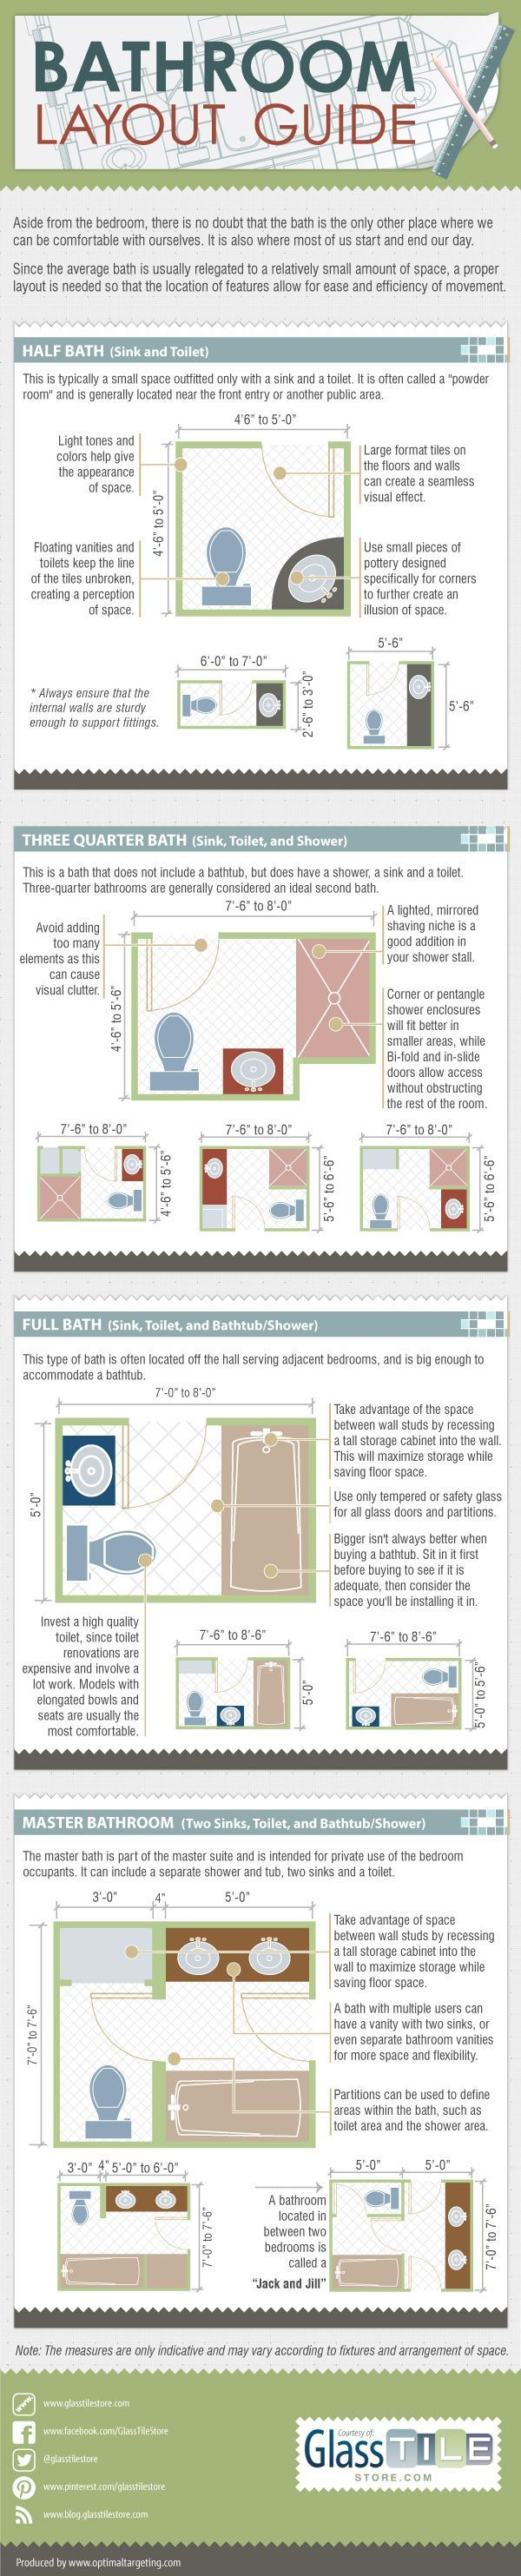 Master bathroom layout - Bathroom Layout Guide Infographics Lightscap3s Com